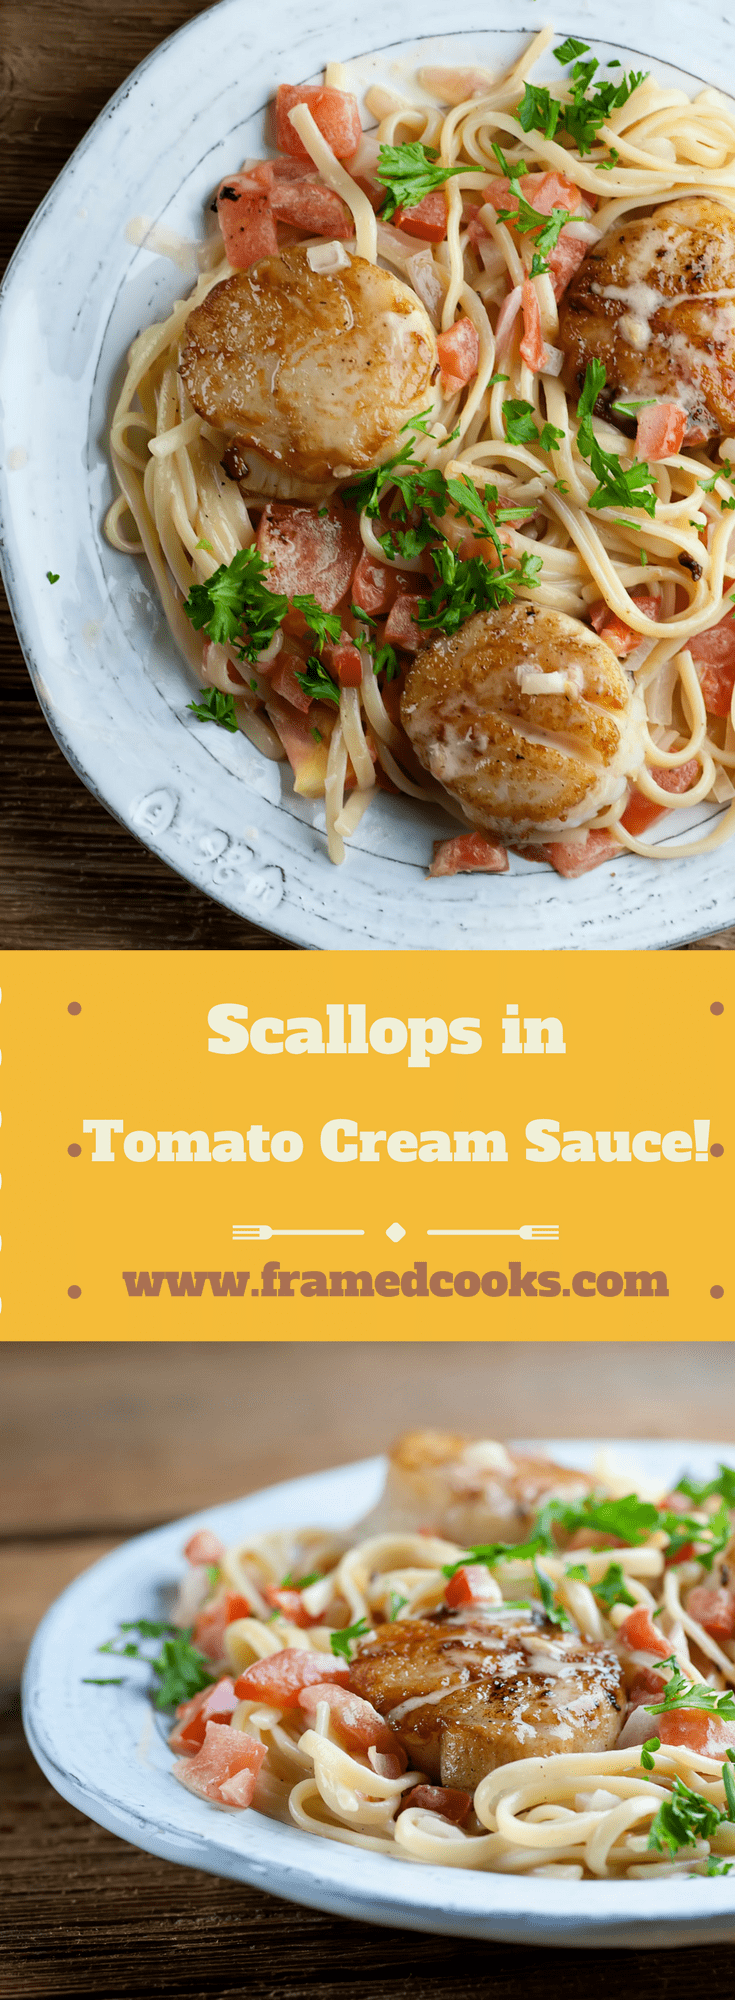 This easy and elegant recipe for seared scallops with tomato cream sauce is fully of the rich flavors of seafood and vegetables, all in a dreamy light sauce.  A perfect company dinner!